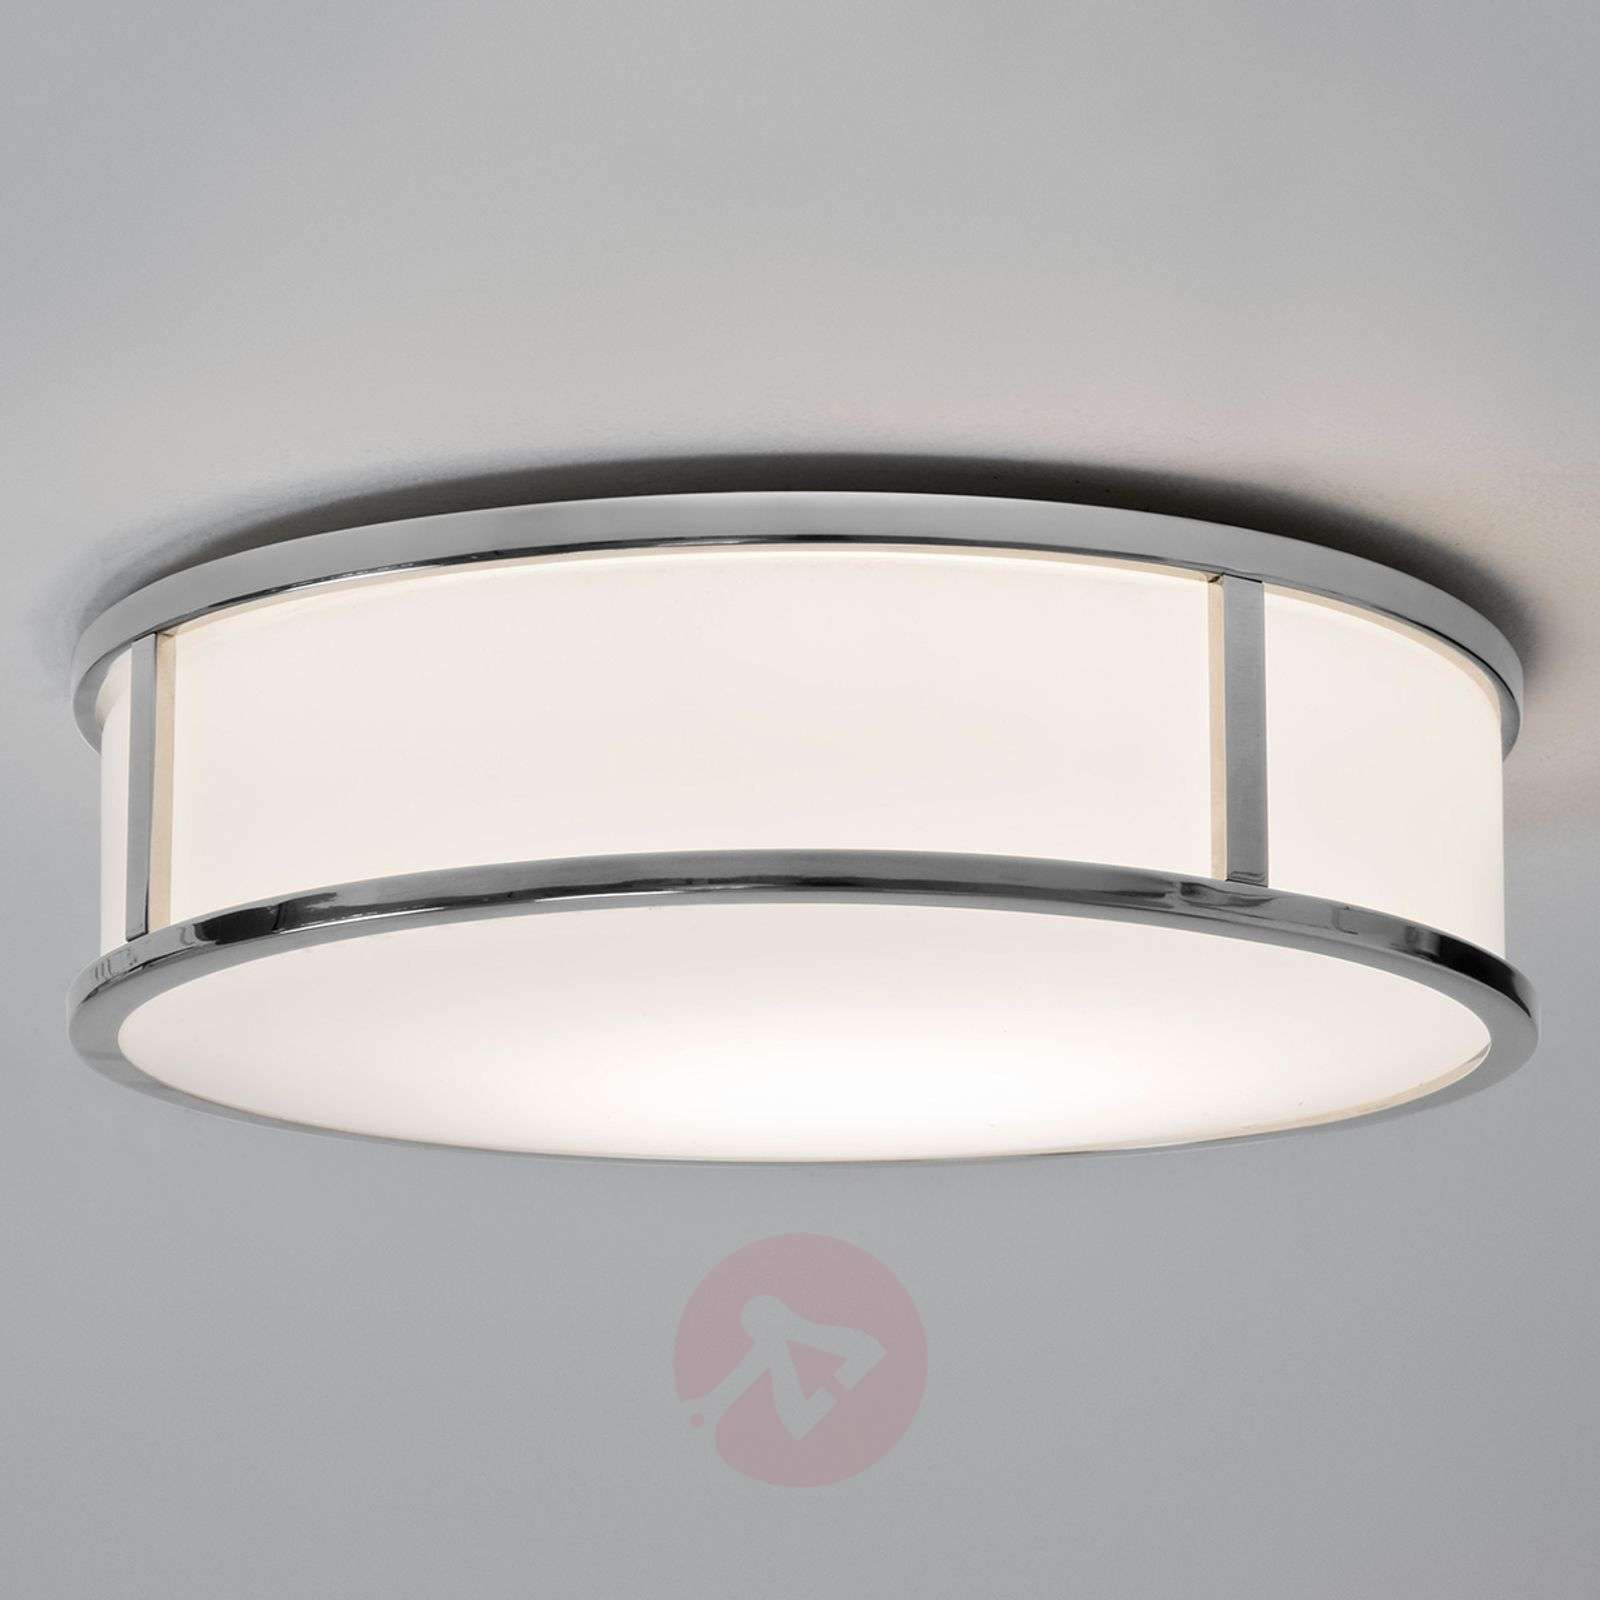 Mashiko Round 300 Bathroom Ceiling Light-1020466-05